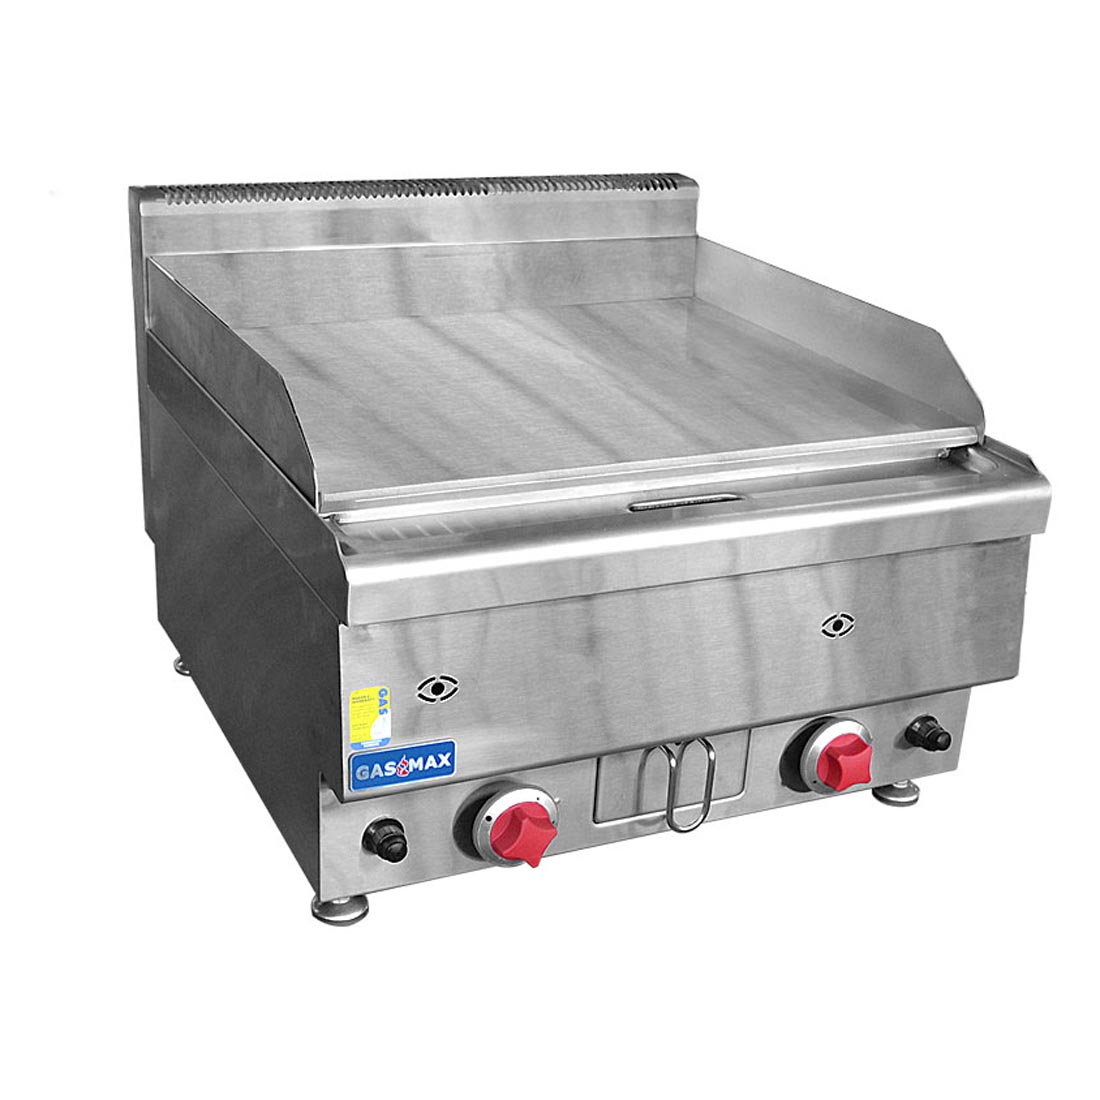 JUS-TRG60 GASMAX Benchtop 2 Bunner Griddle 600mm